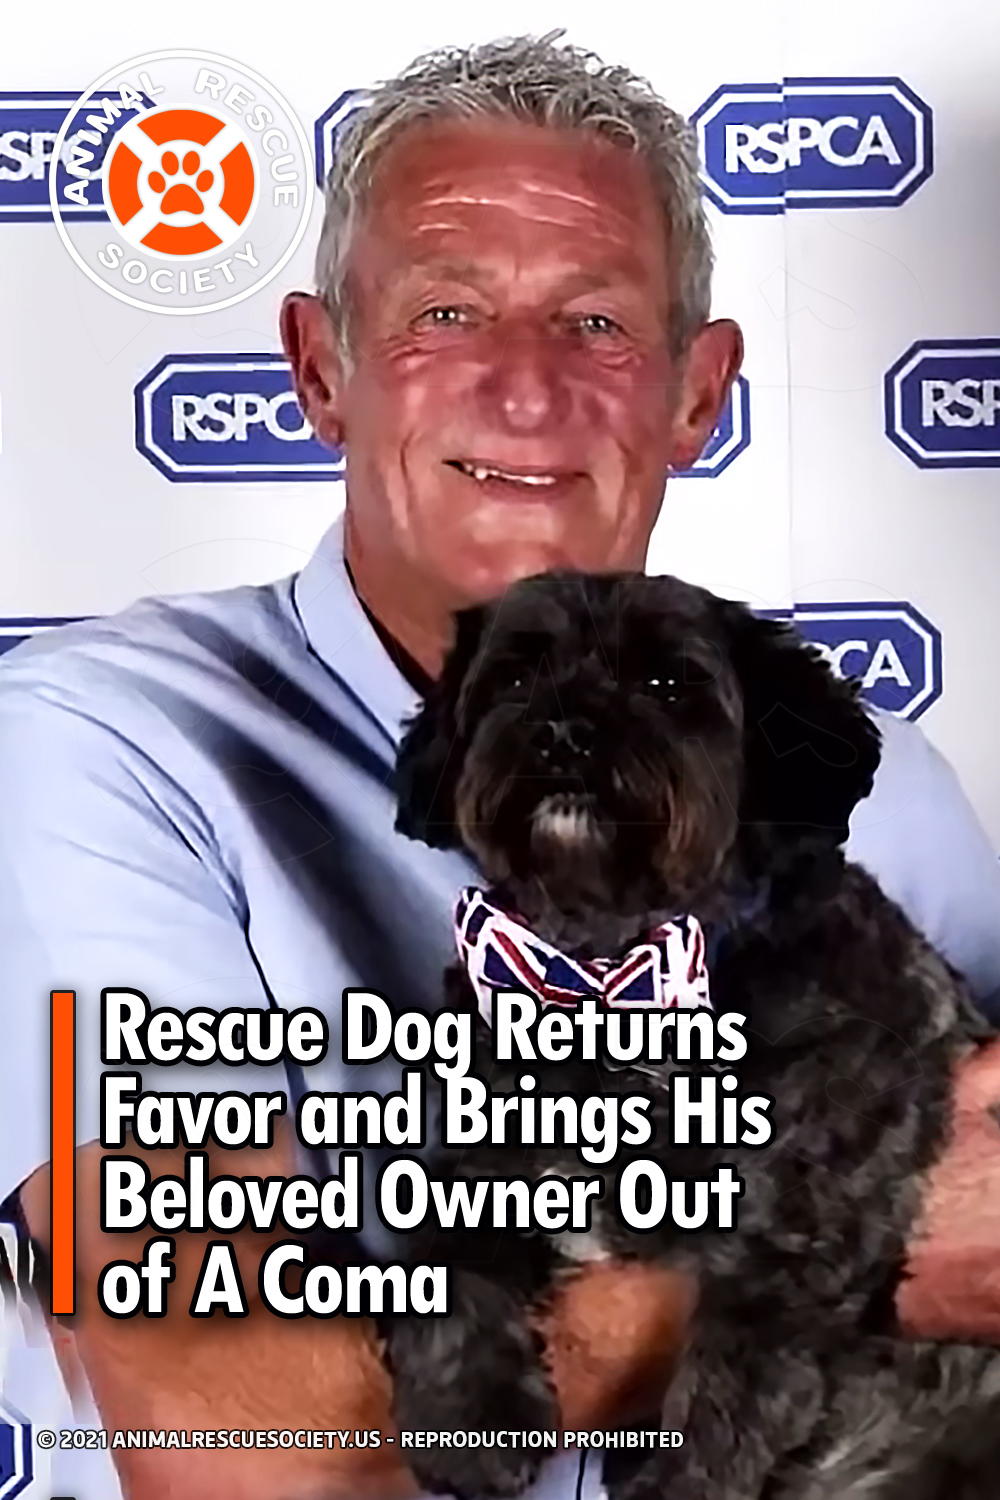 Rescue Dog Returns Favor and Brings His Beloved Owner Out of A Coma